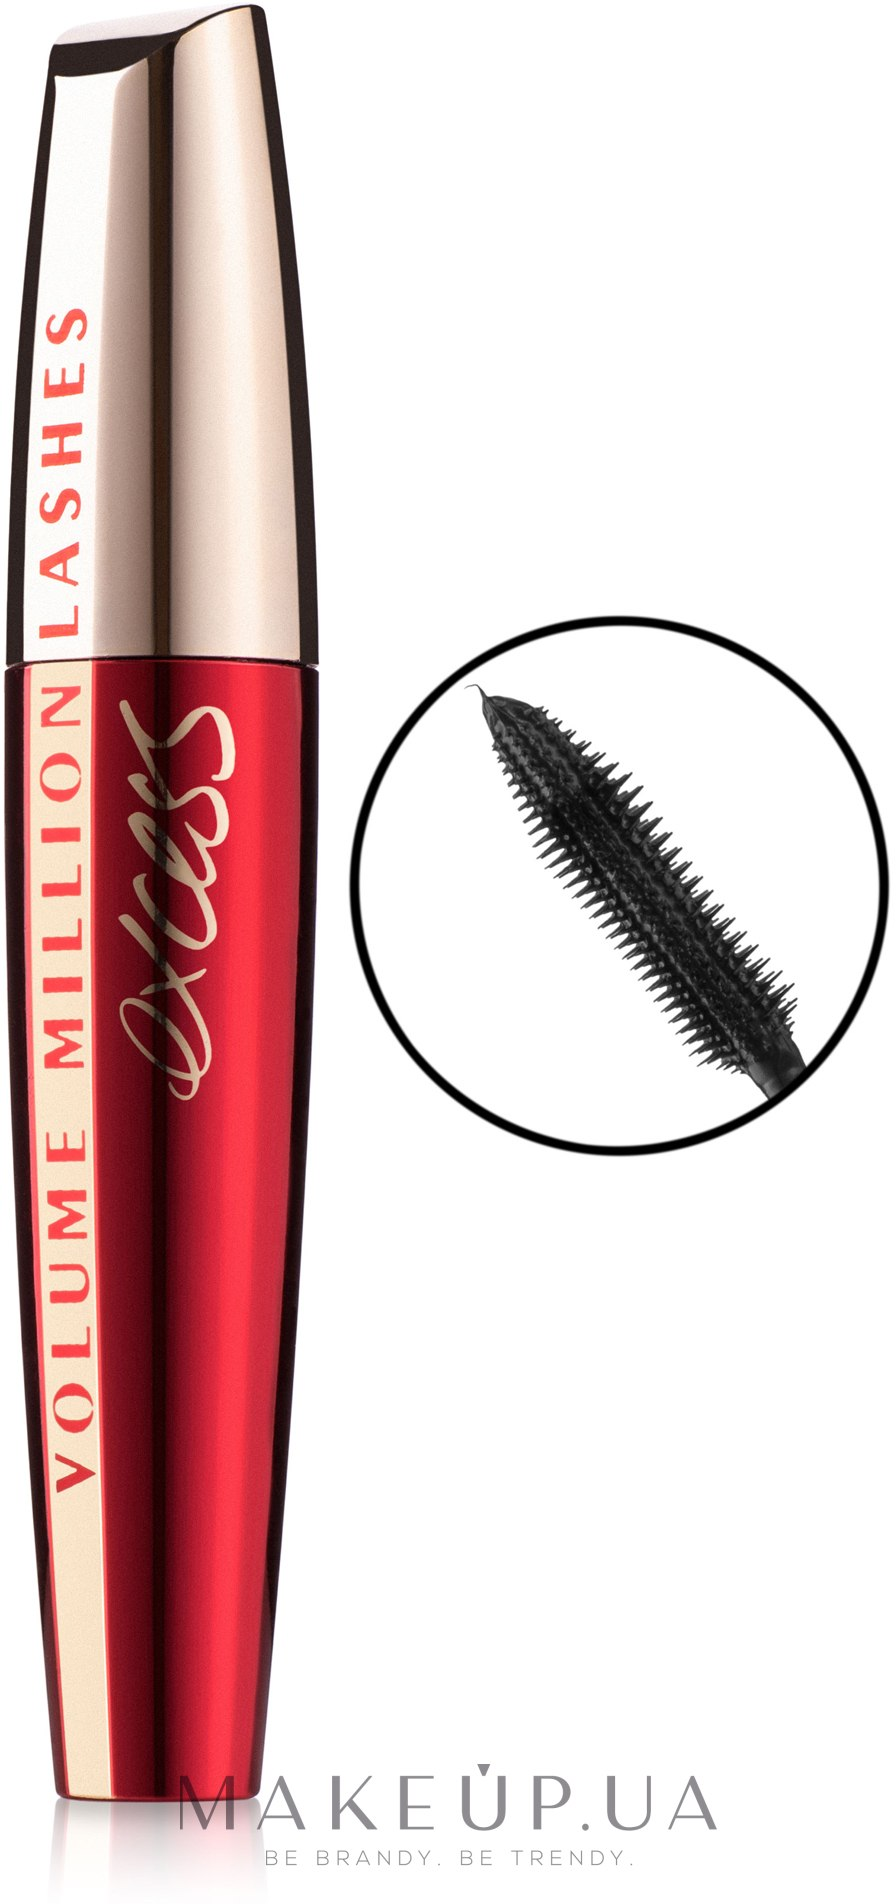 df22f80d181 ... Тушь для ресниц - L'Oreal Paris Volume Million Lashes Excess Mascara —  фото N2